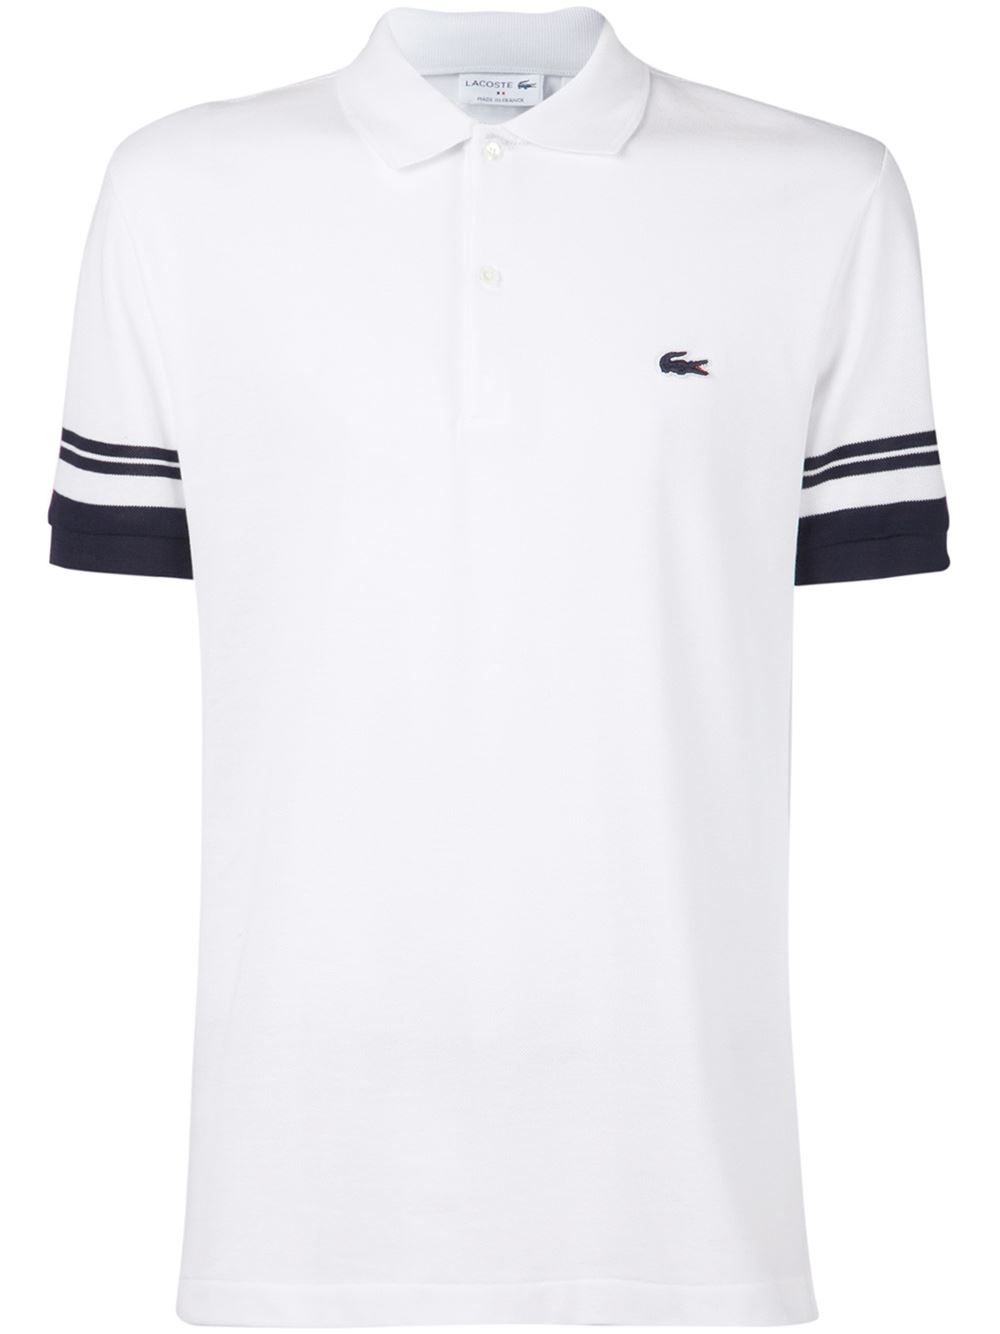 lacoste striped trim polo shirt in white for men lyst. Black Bedroom Furniture Sets. Home Design Ideas